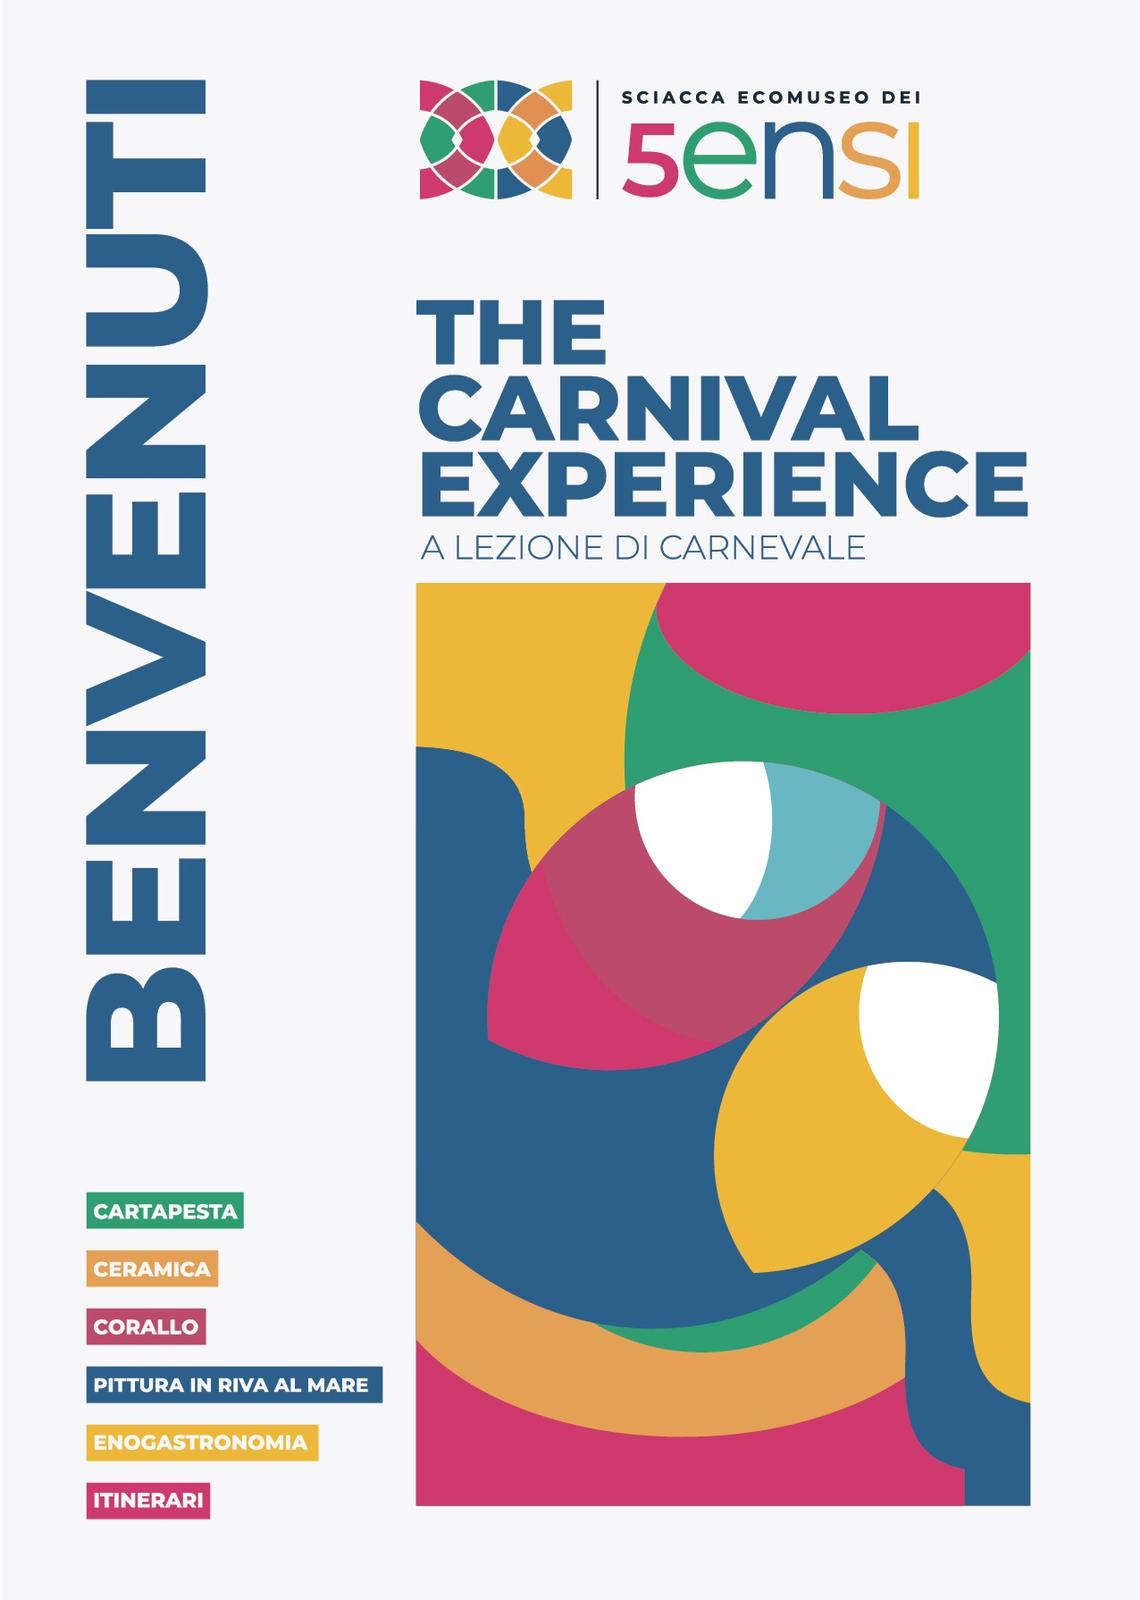 TheCarnivalExperience